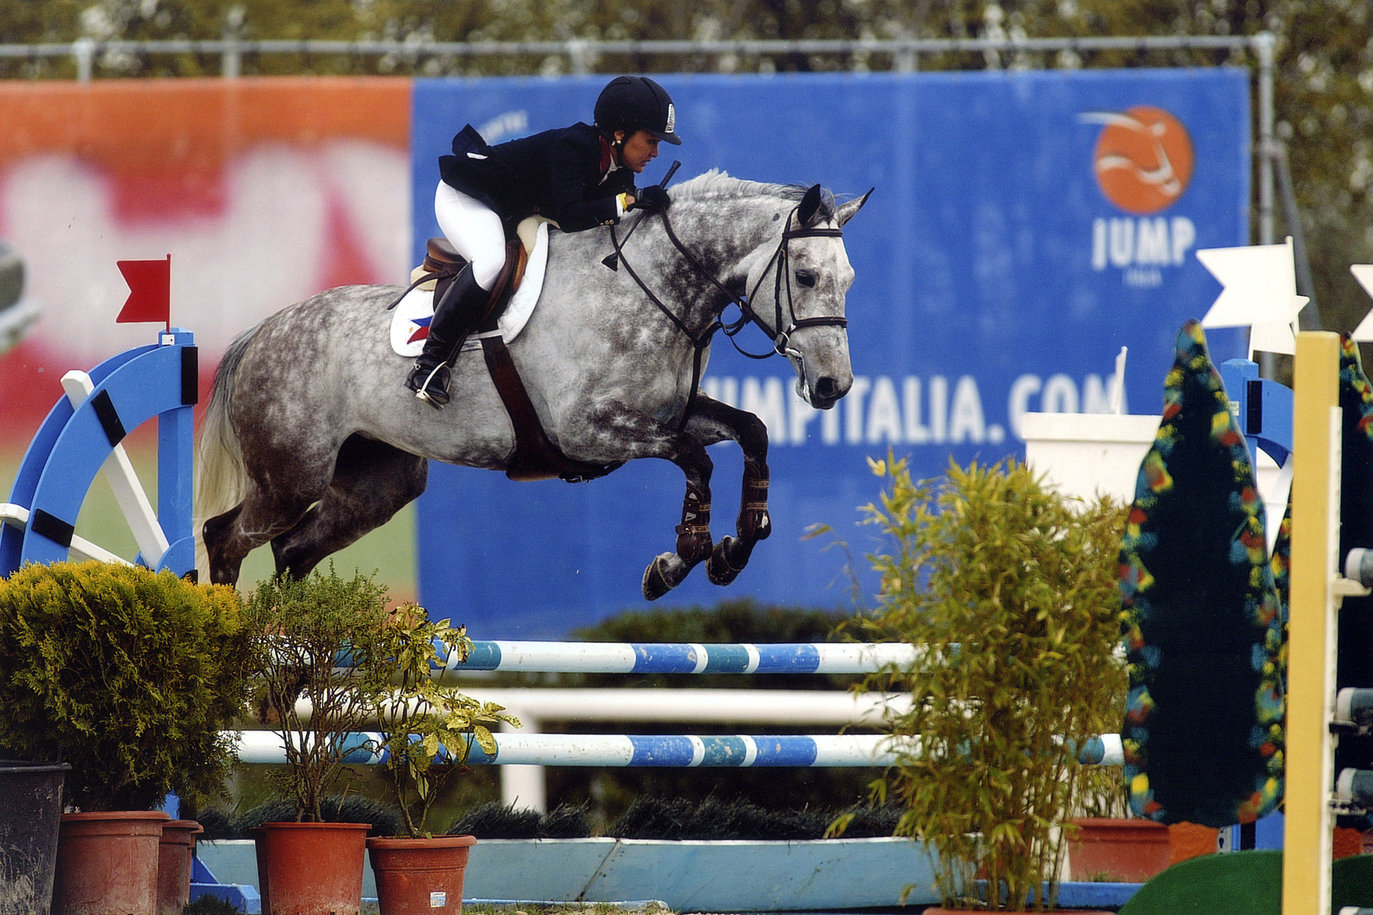 Magic at 7 years old: Jump Italia Arrezzo, Italy 2008.